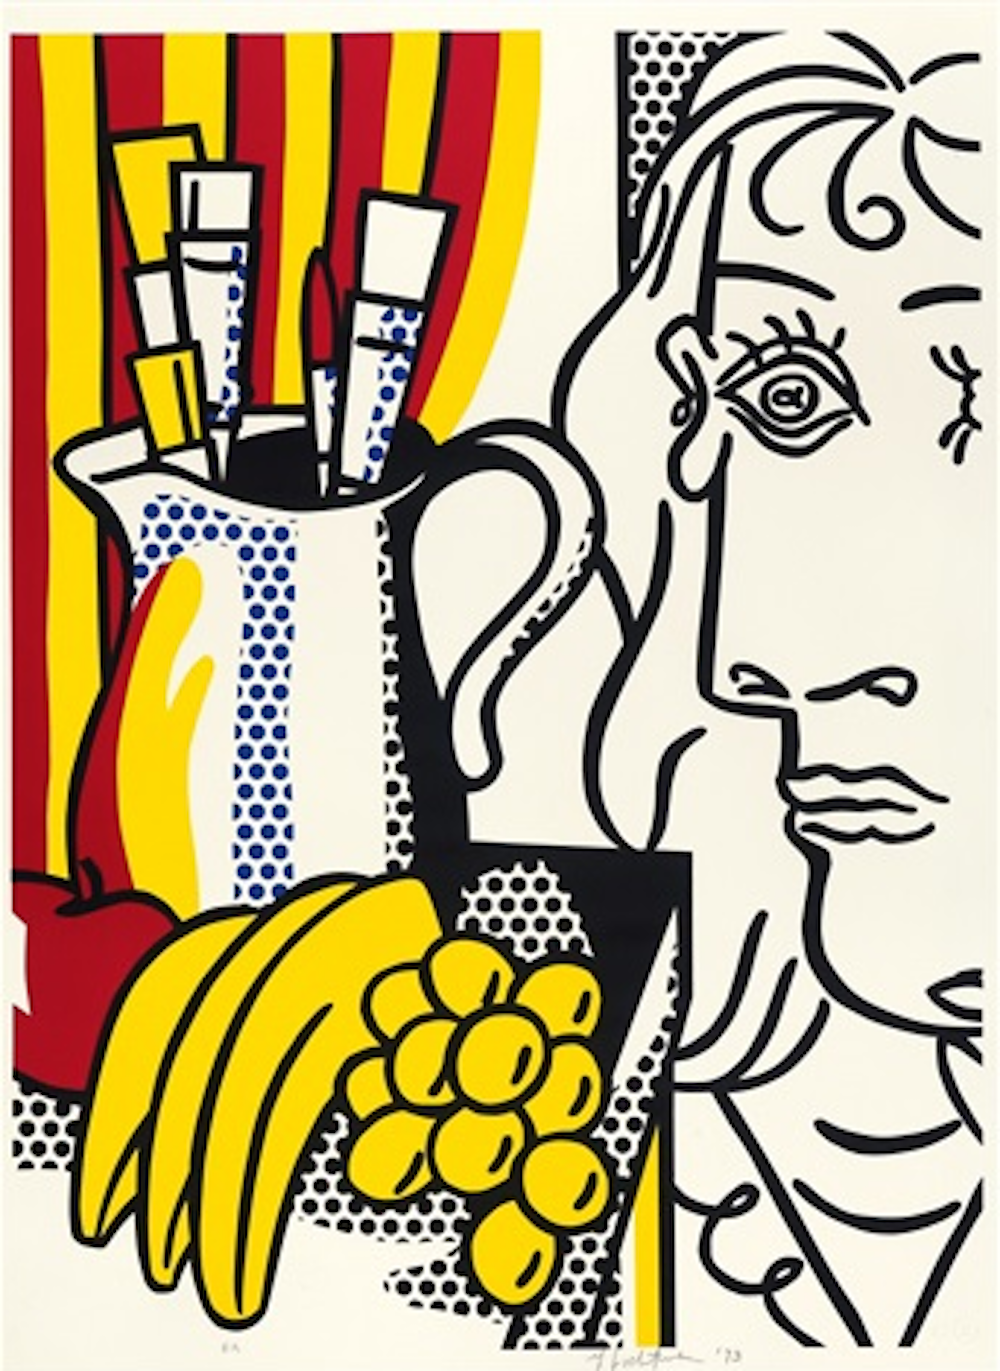 Still live with Picasso by Roy Lichtenstein